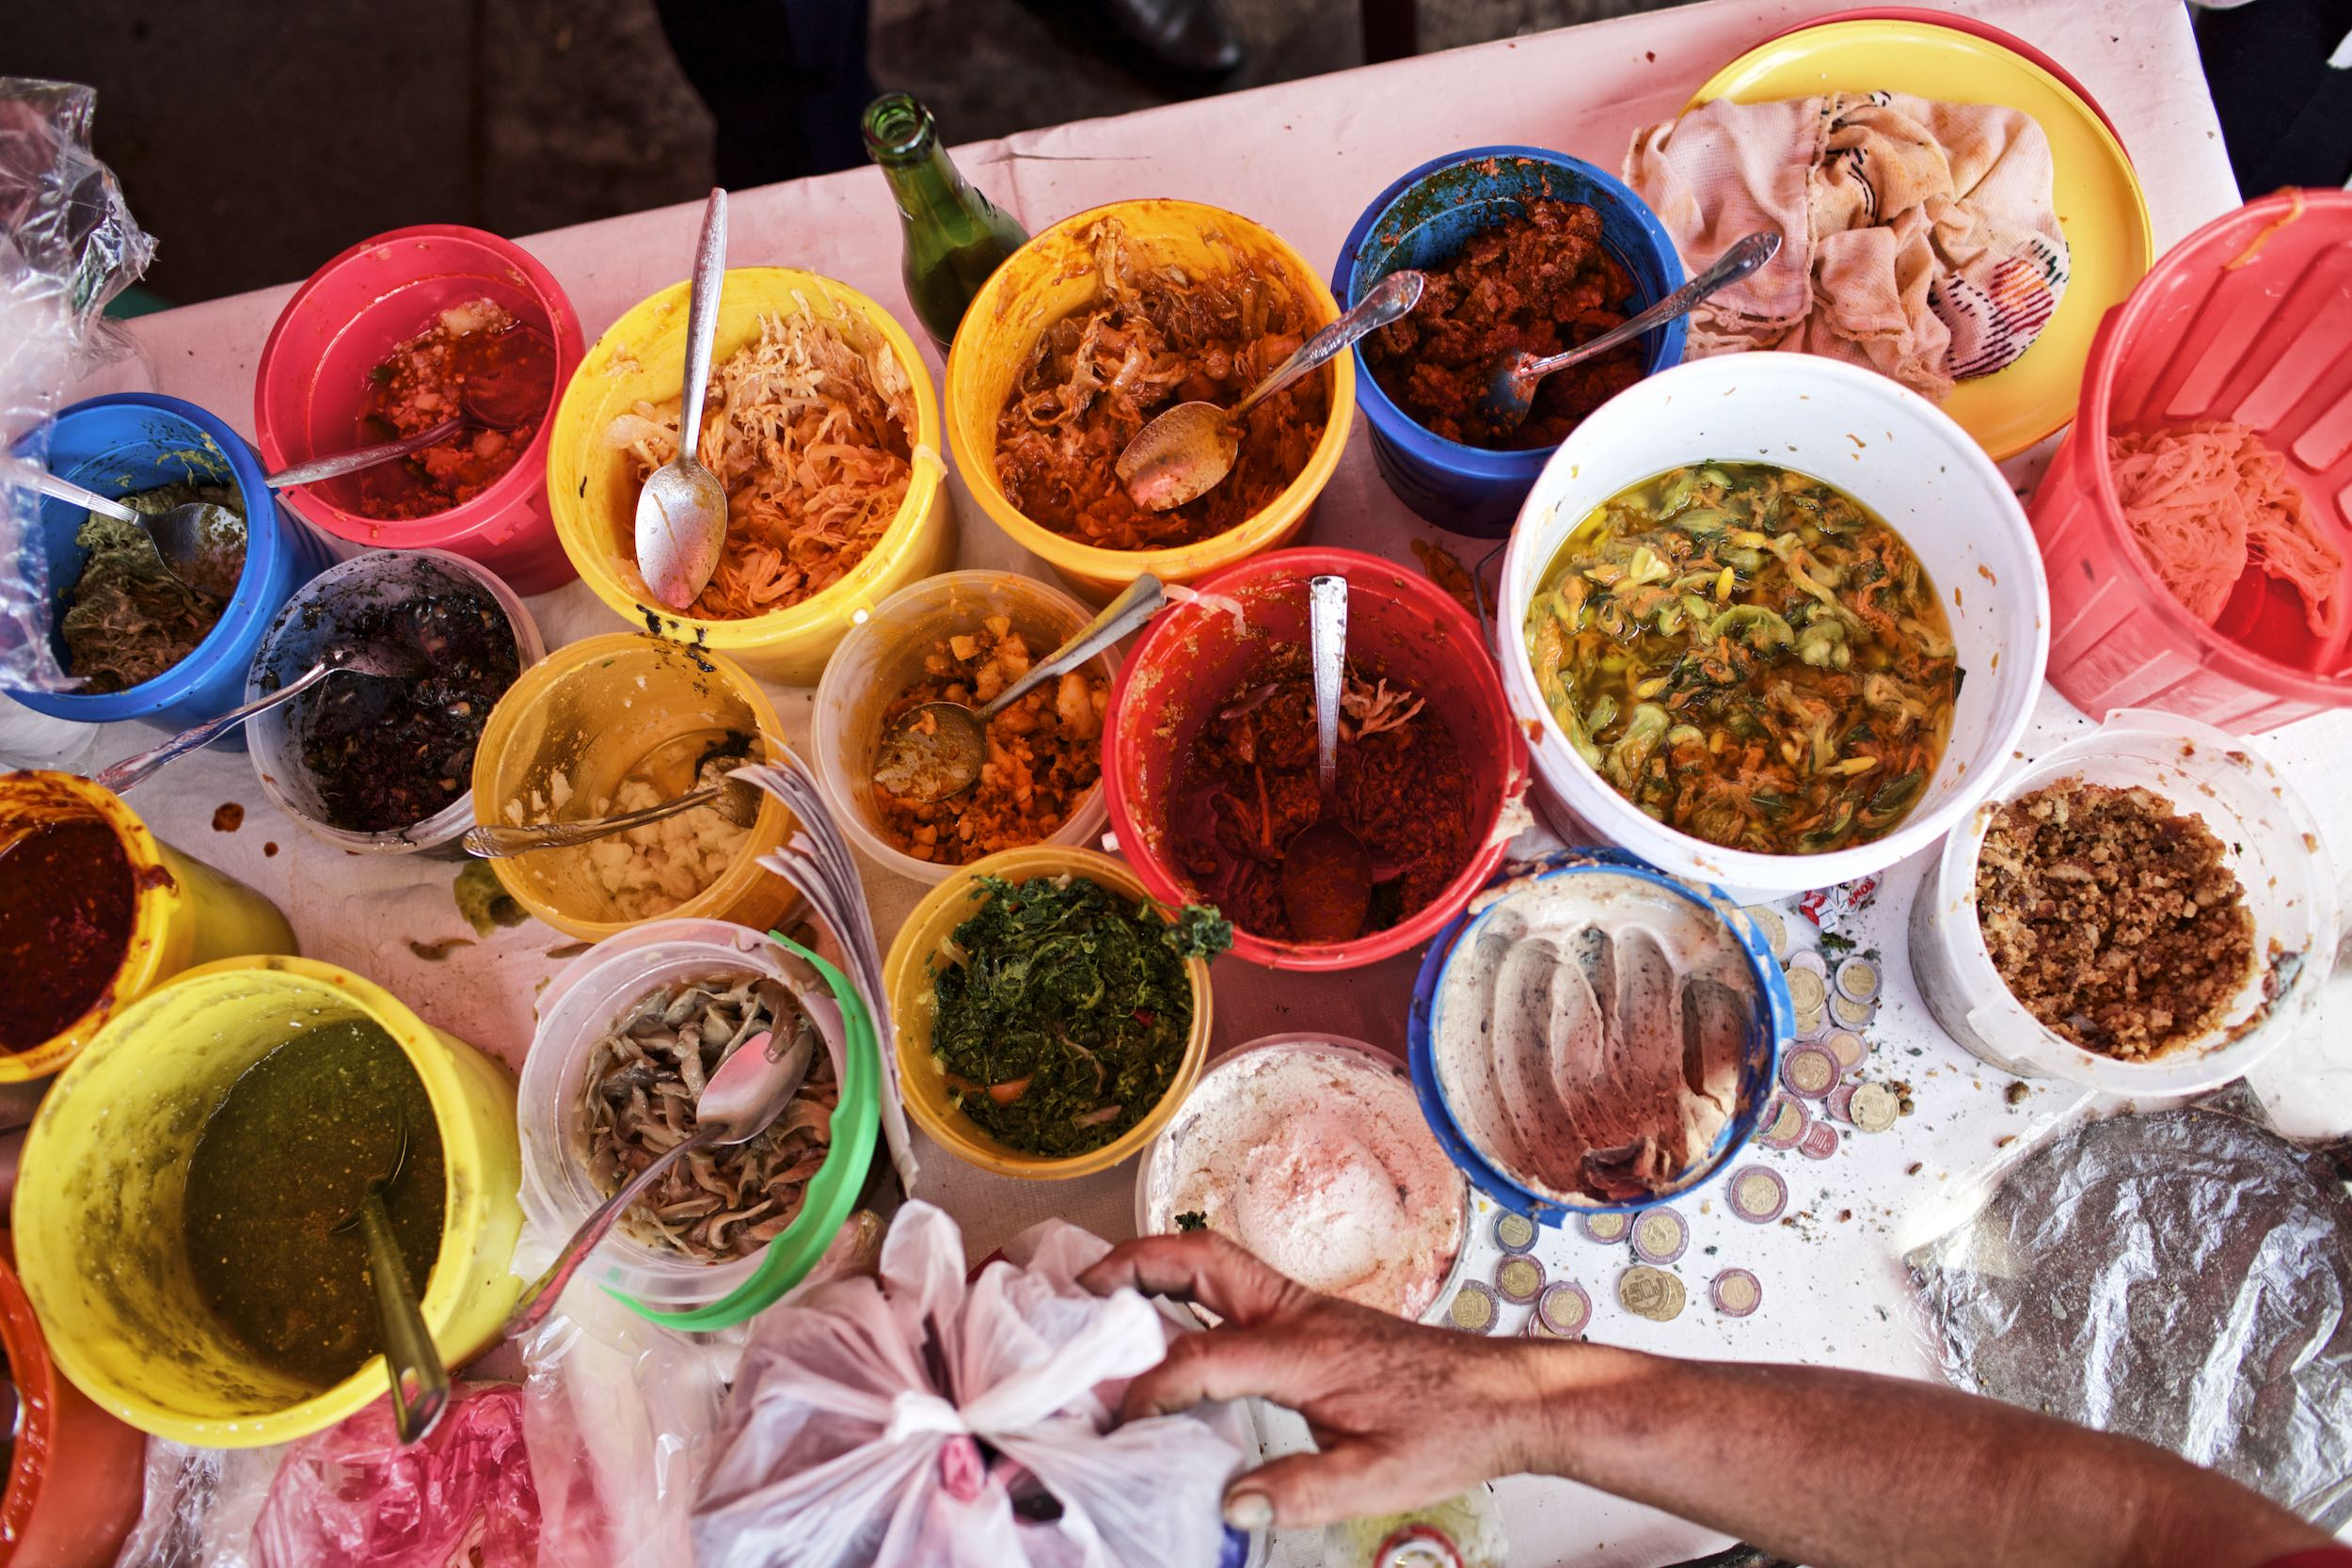 Jody Horton Photography - Cooking ingredients for street food in Mexico City.